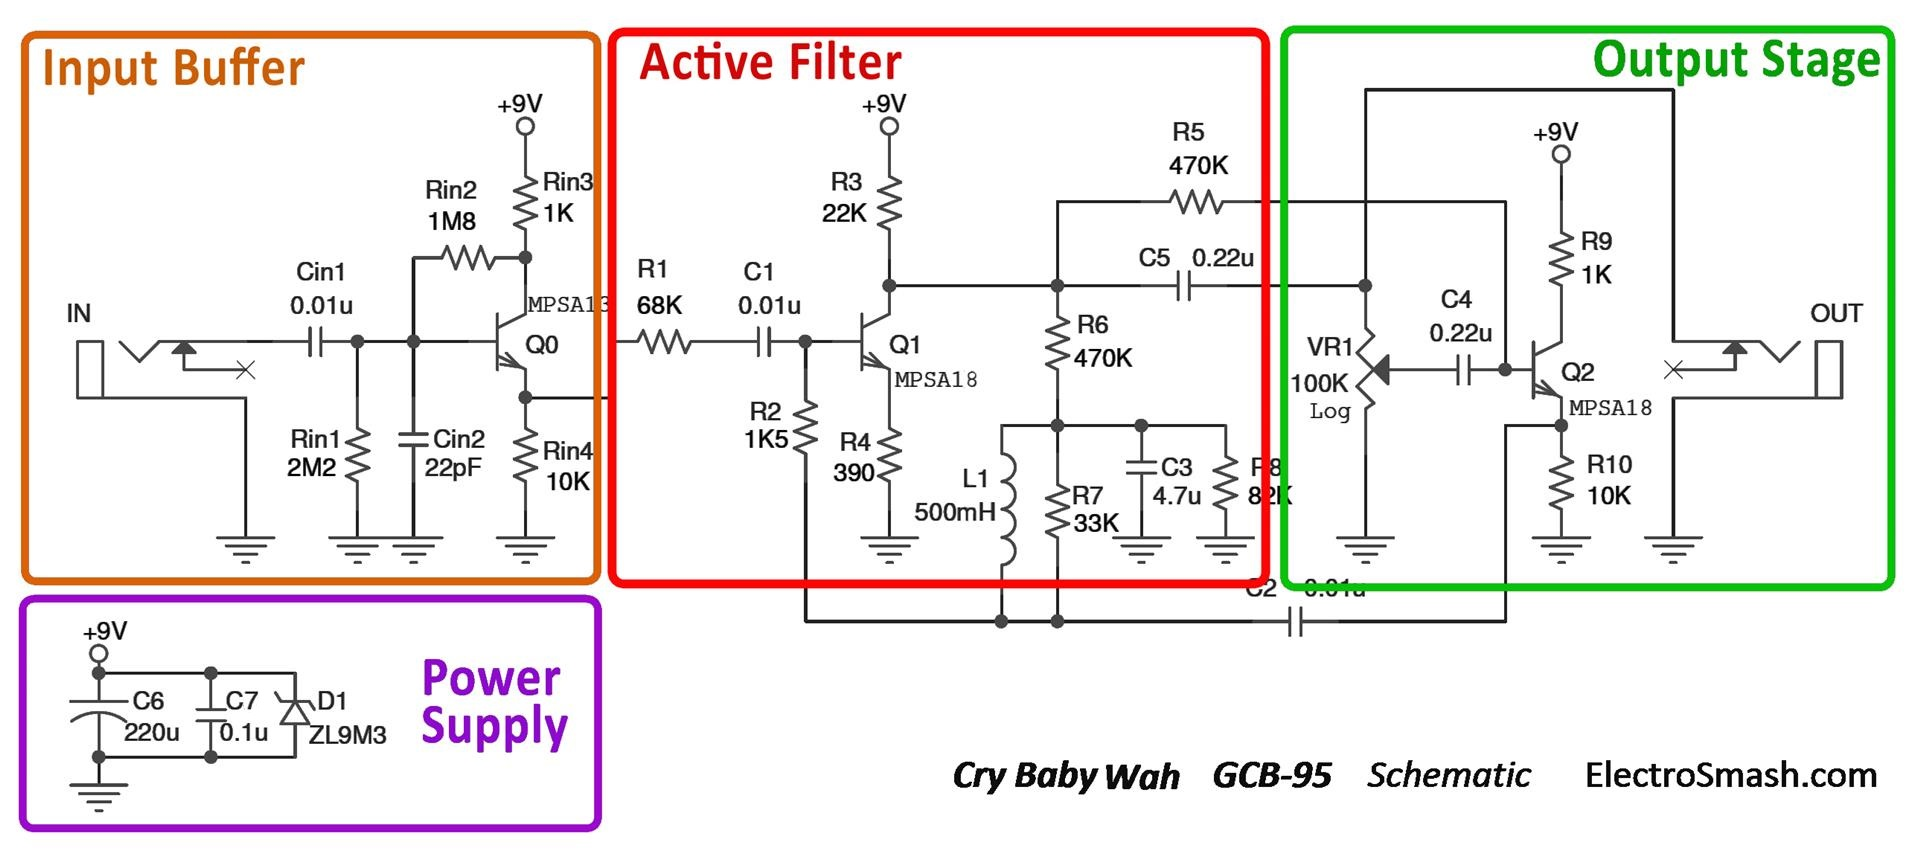 cry baby wah gcb 95 schematic parts electrosmash dunlop crybaby gcb 95 circuit analysis